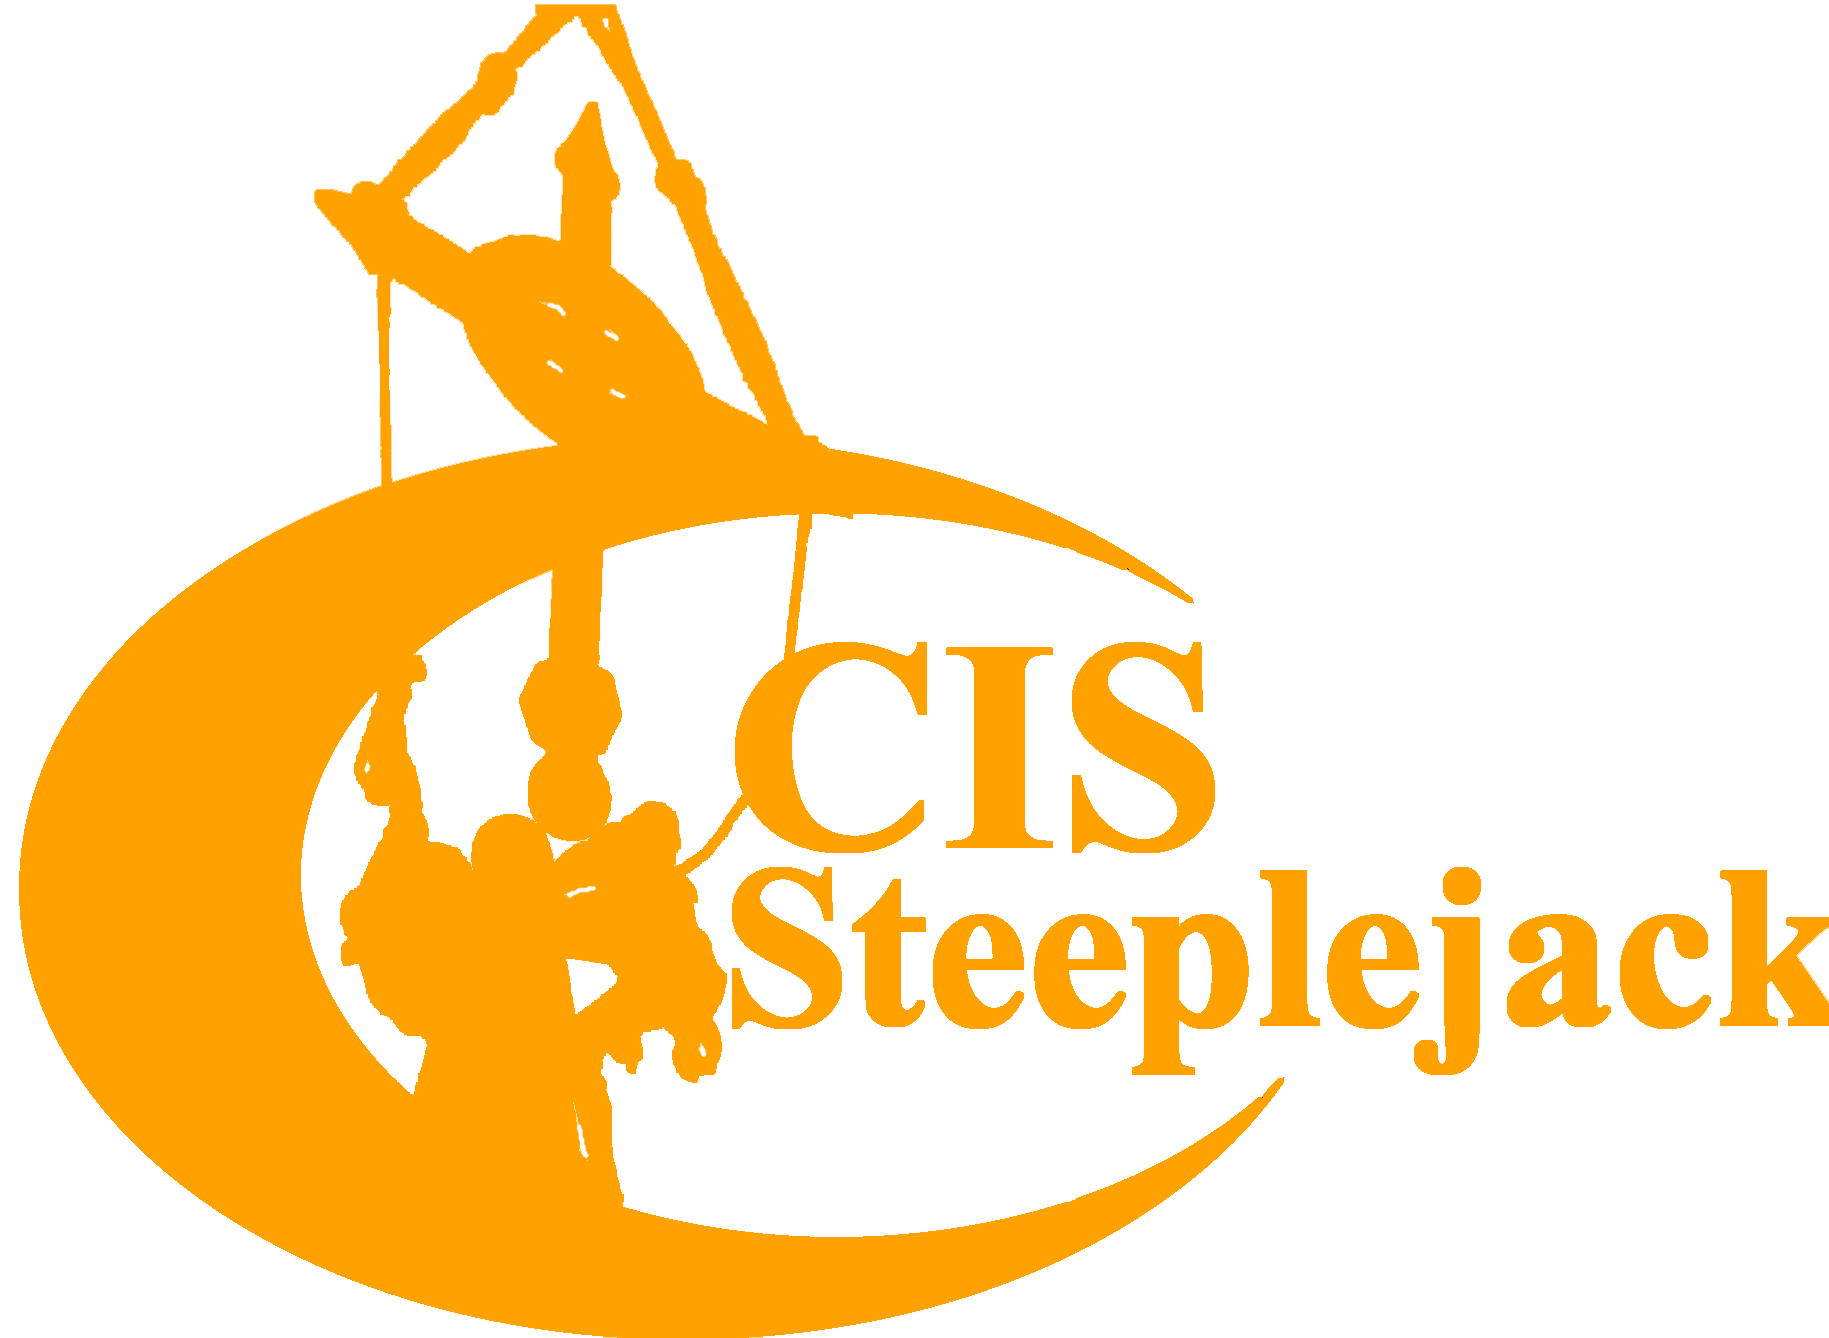 cis steeplejack